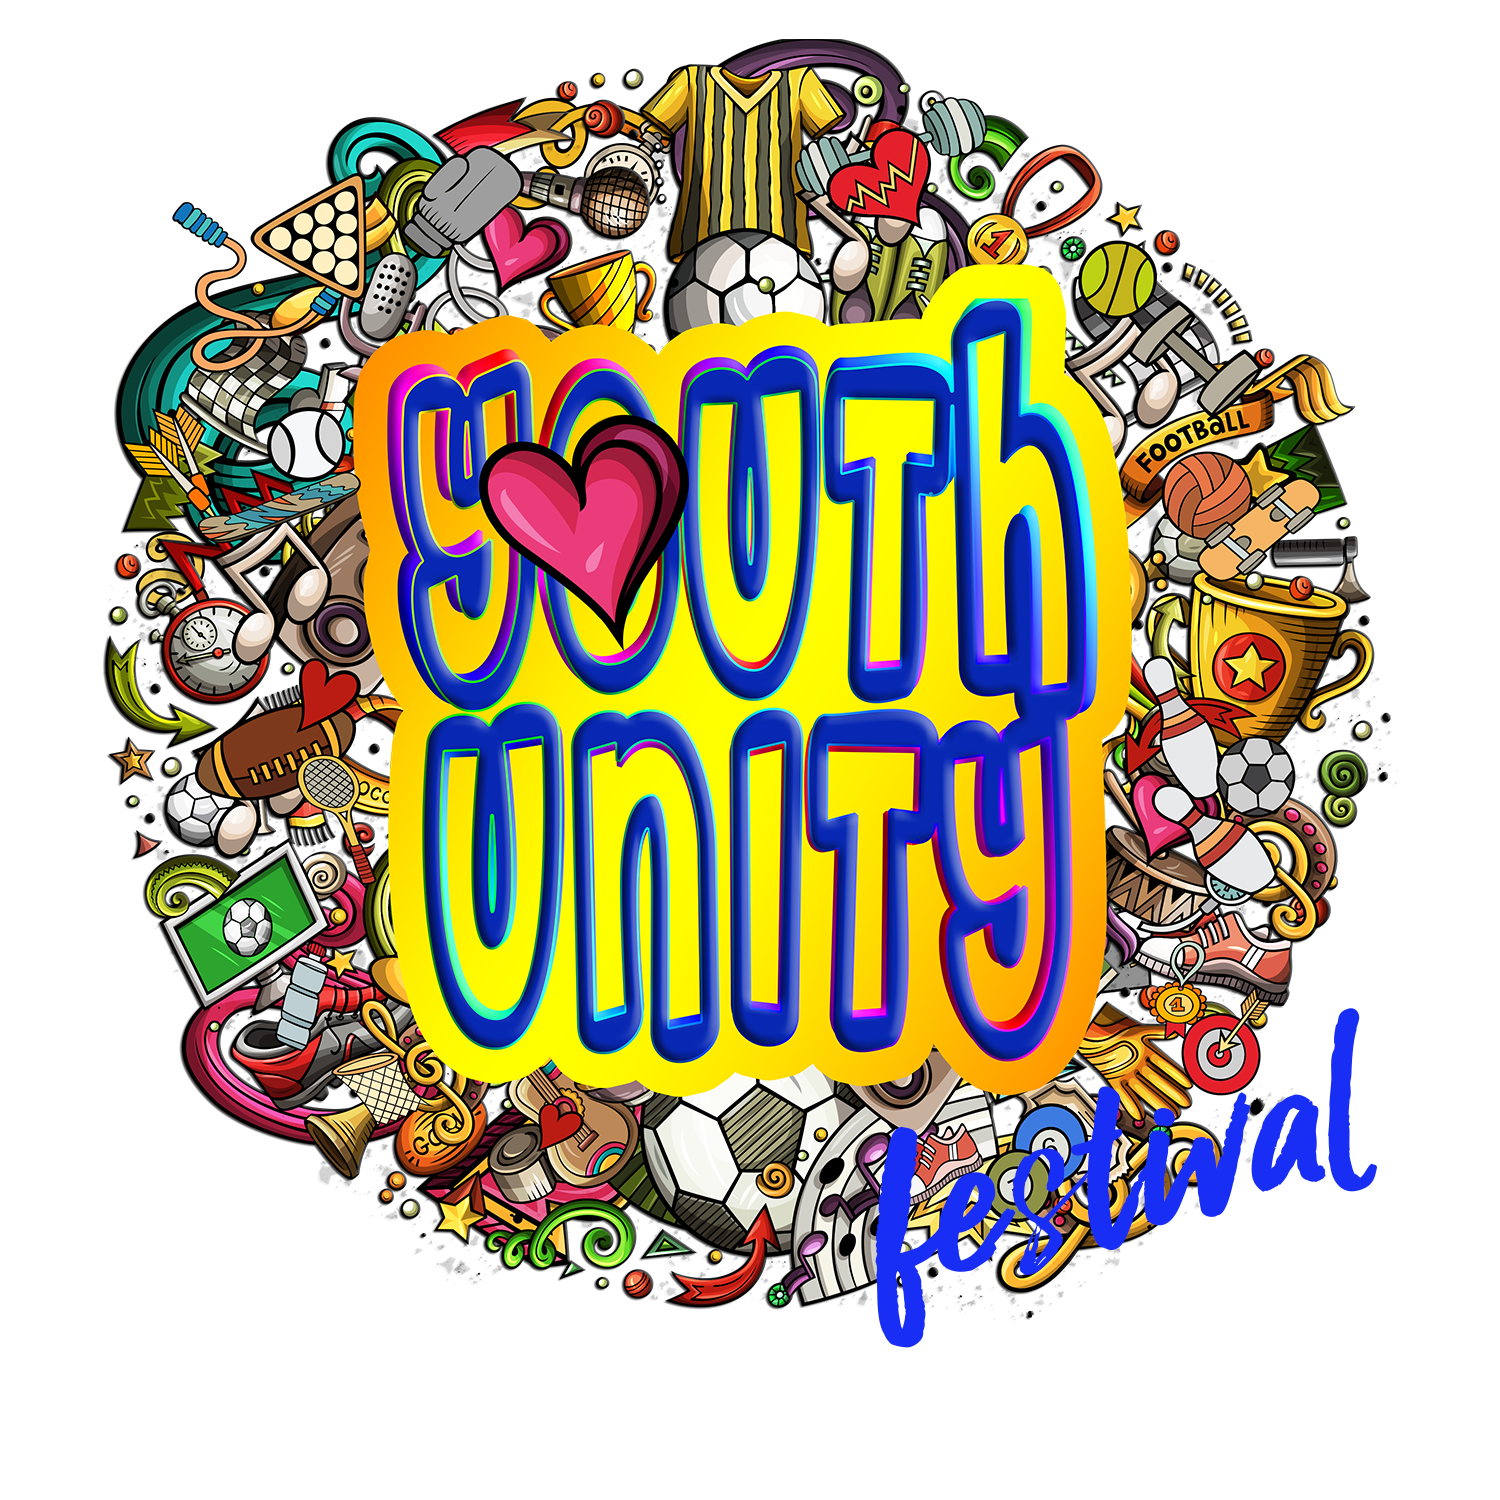 YOUTH UNITY WITH FESTIVAL WORD